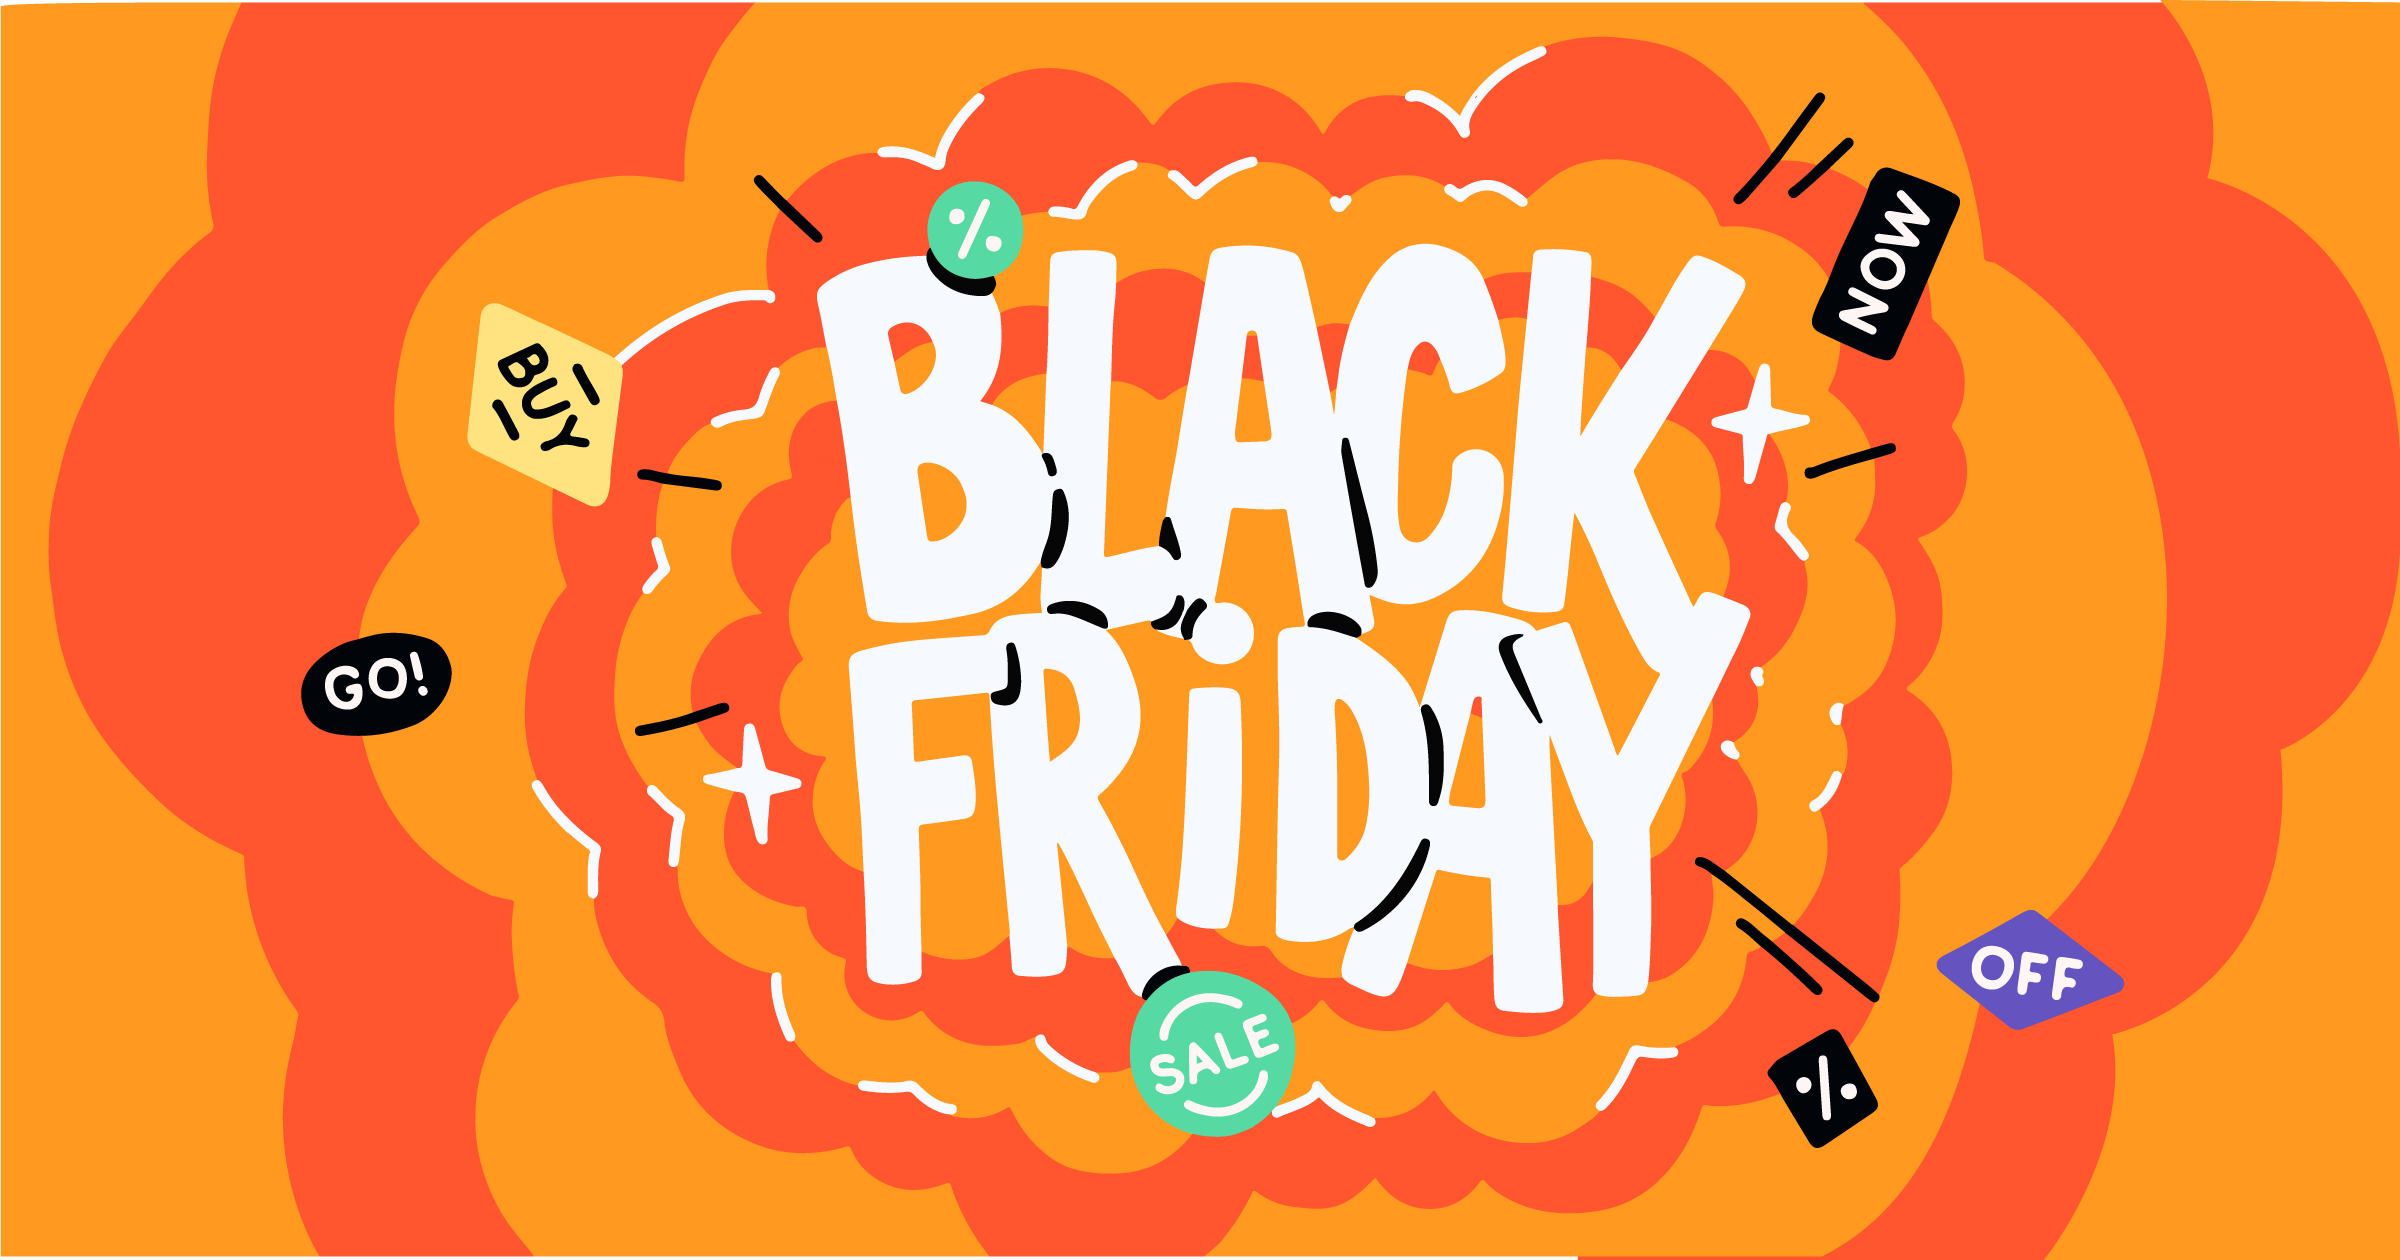 Marketing techniques to improve Black Friday sales